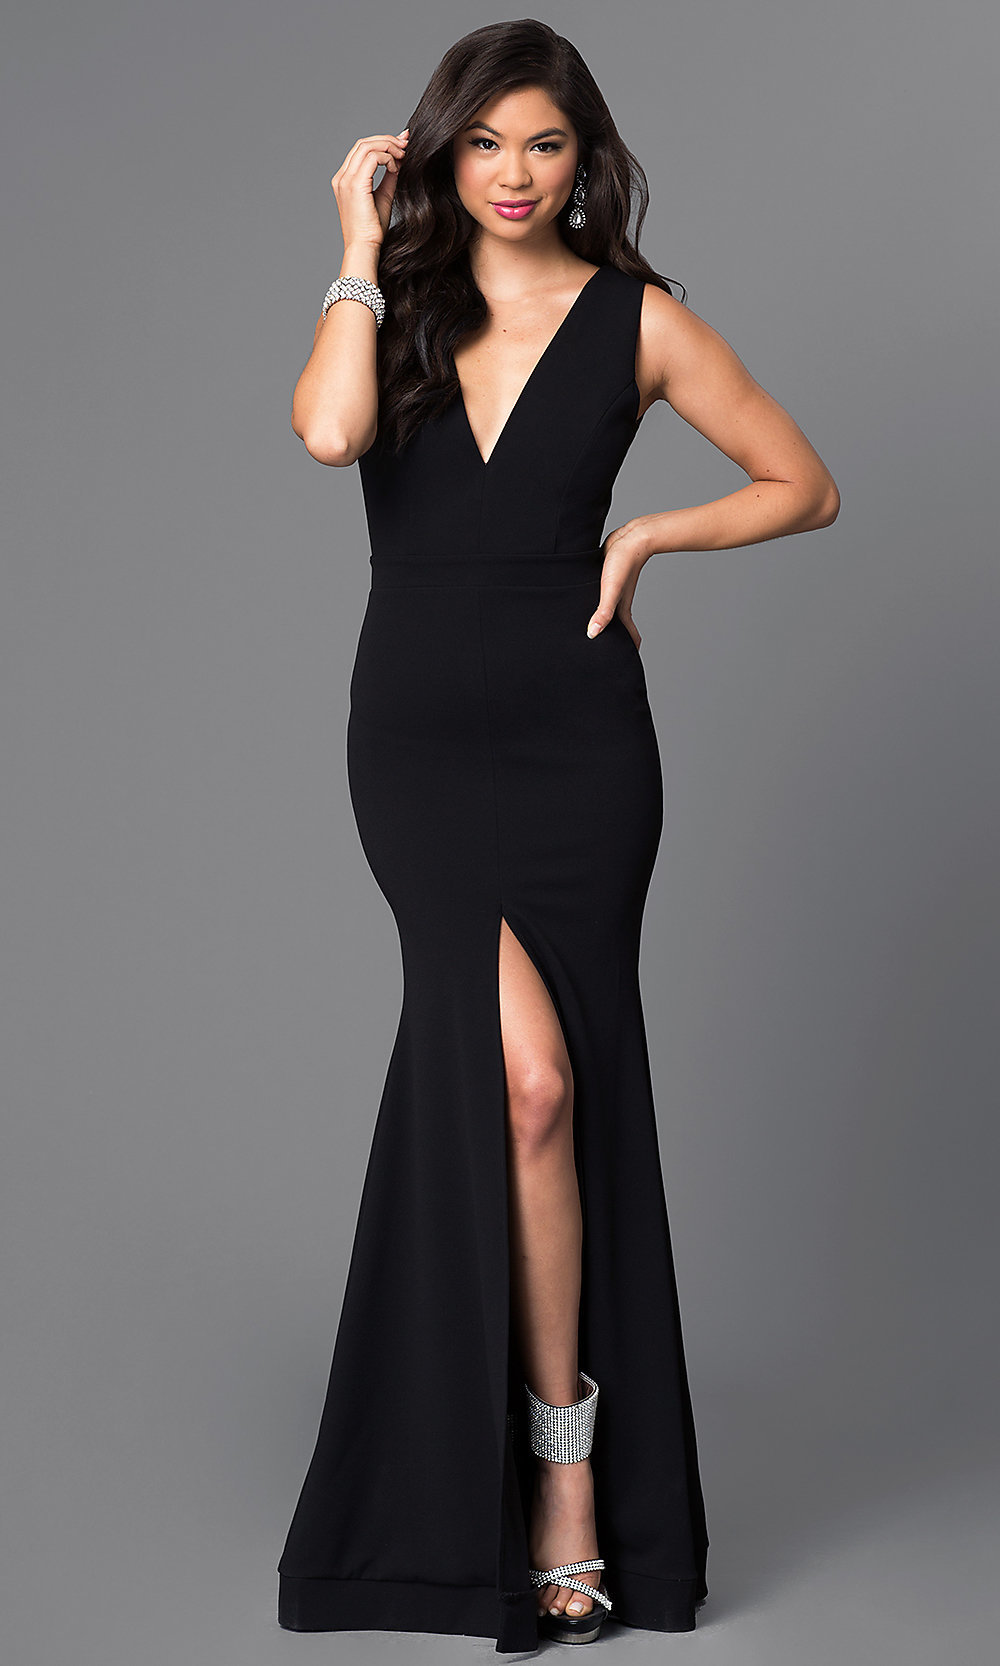 Black Formal Evening Gowns